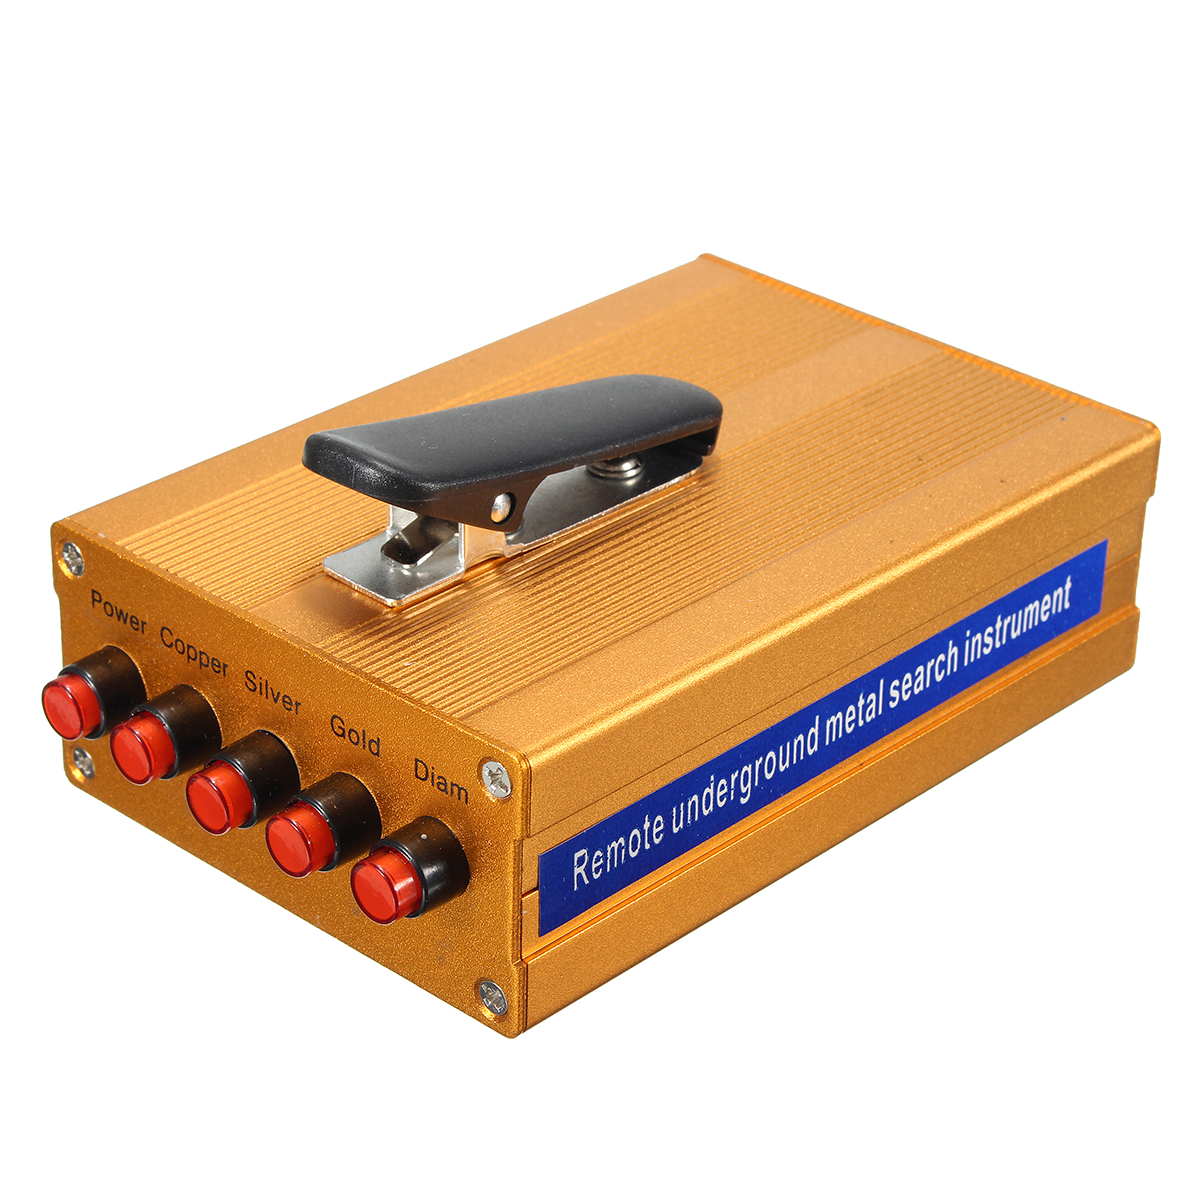 Remote Metal Search Diamond Detector For Detecting Copper Gold Silver